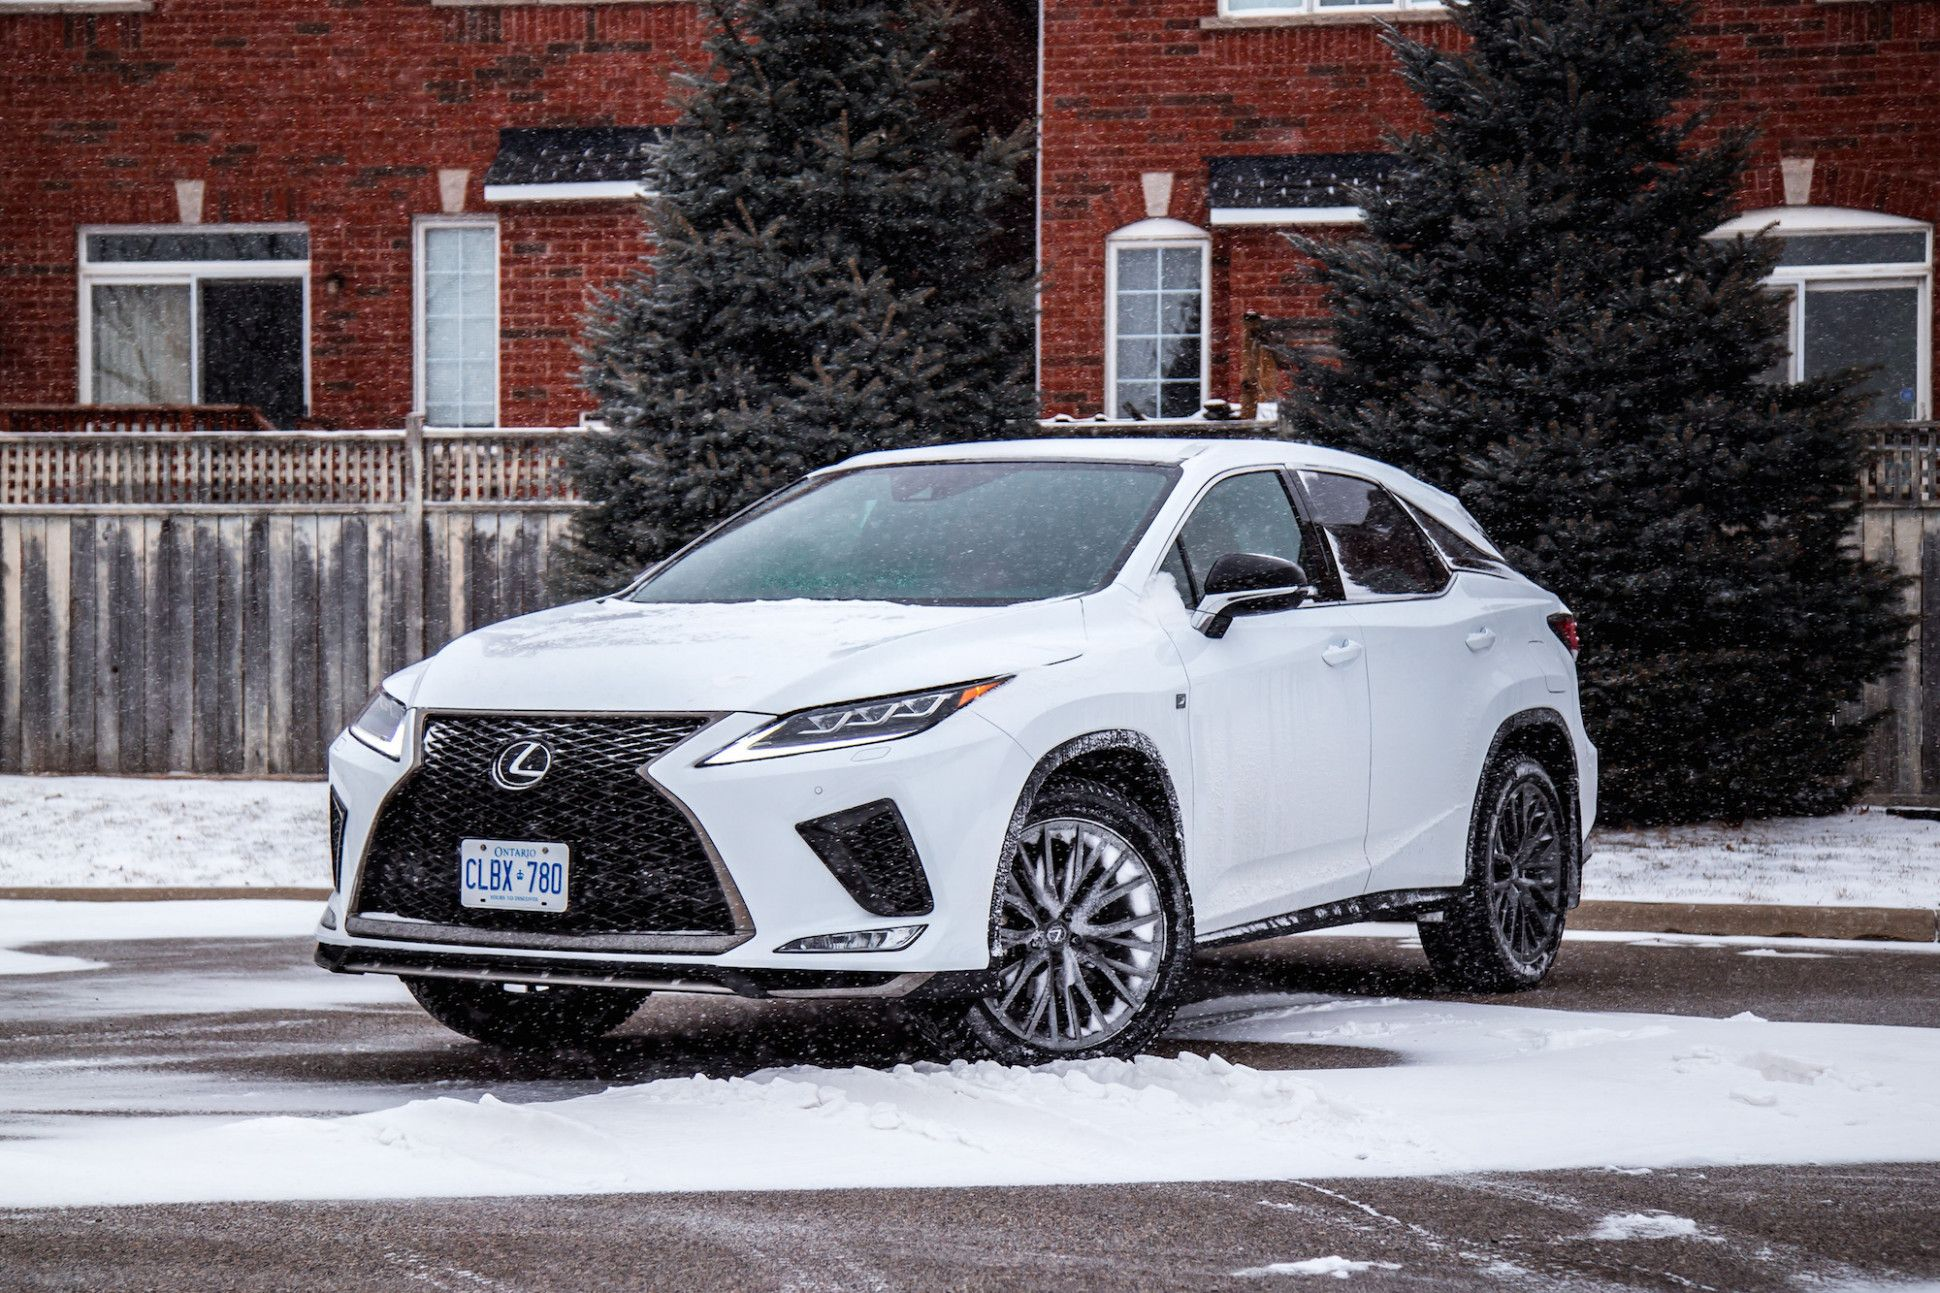 2020 Lexus Rx 350 F Sport Suv Review In 2020 Sport Suv Suv Reviews Lexus Rx 350